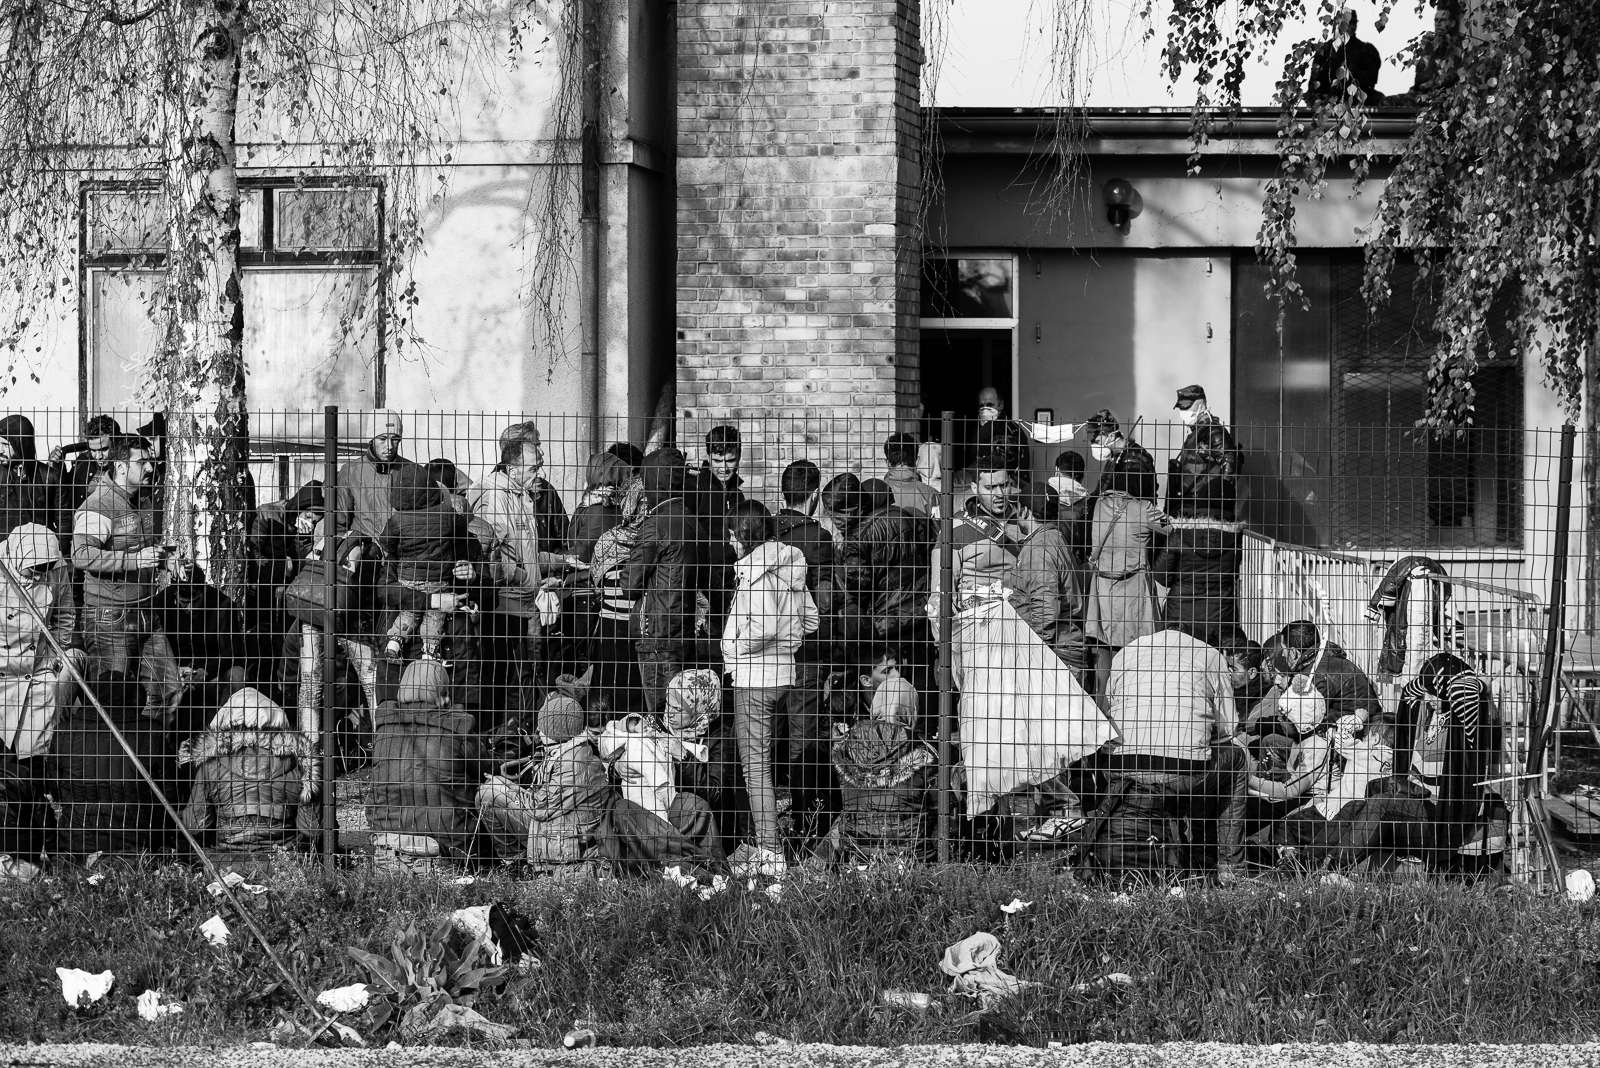 Migrants behind the fence of a camp